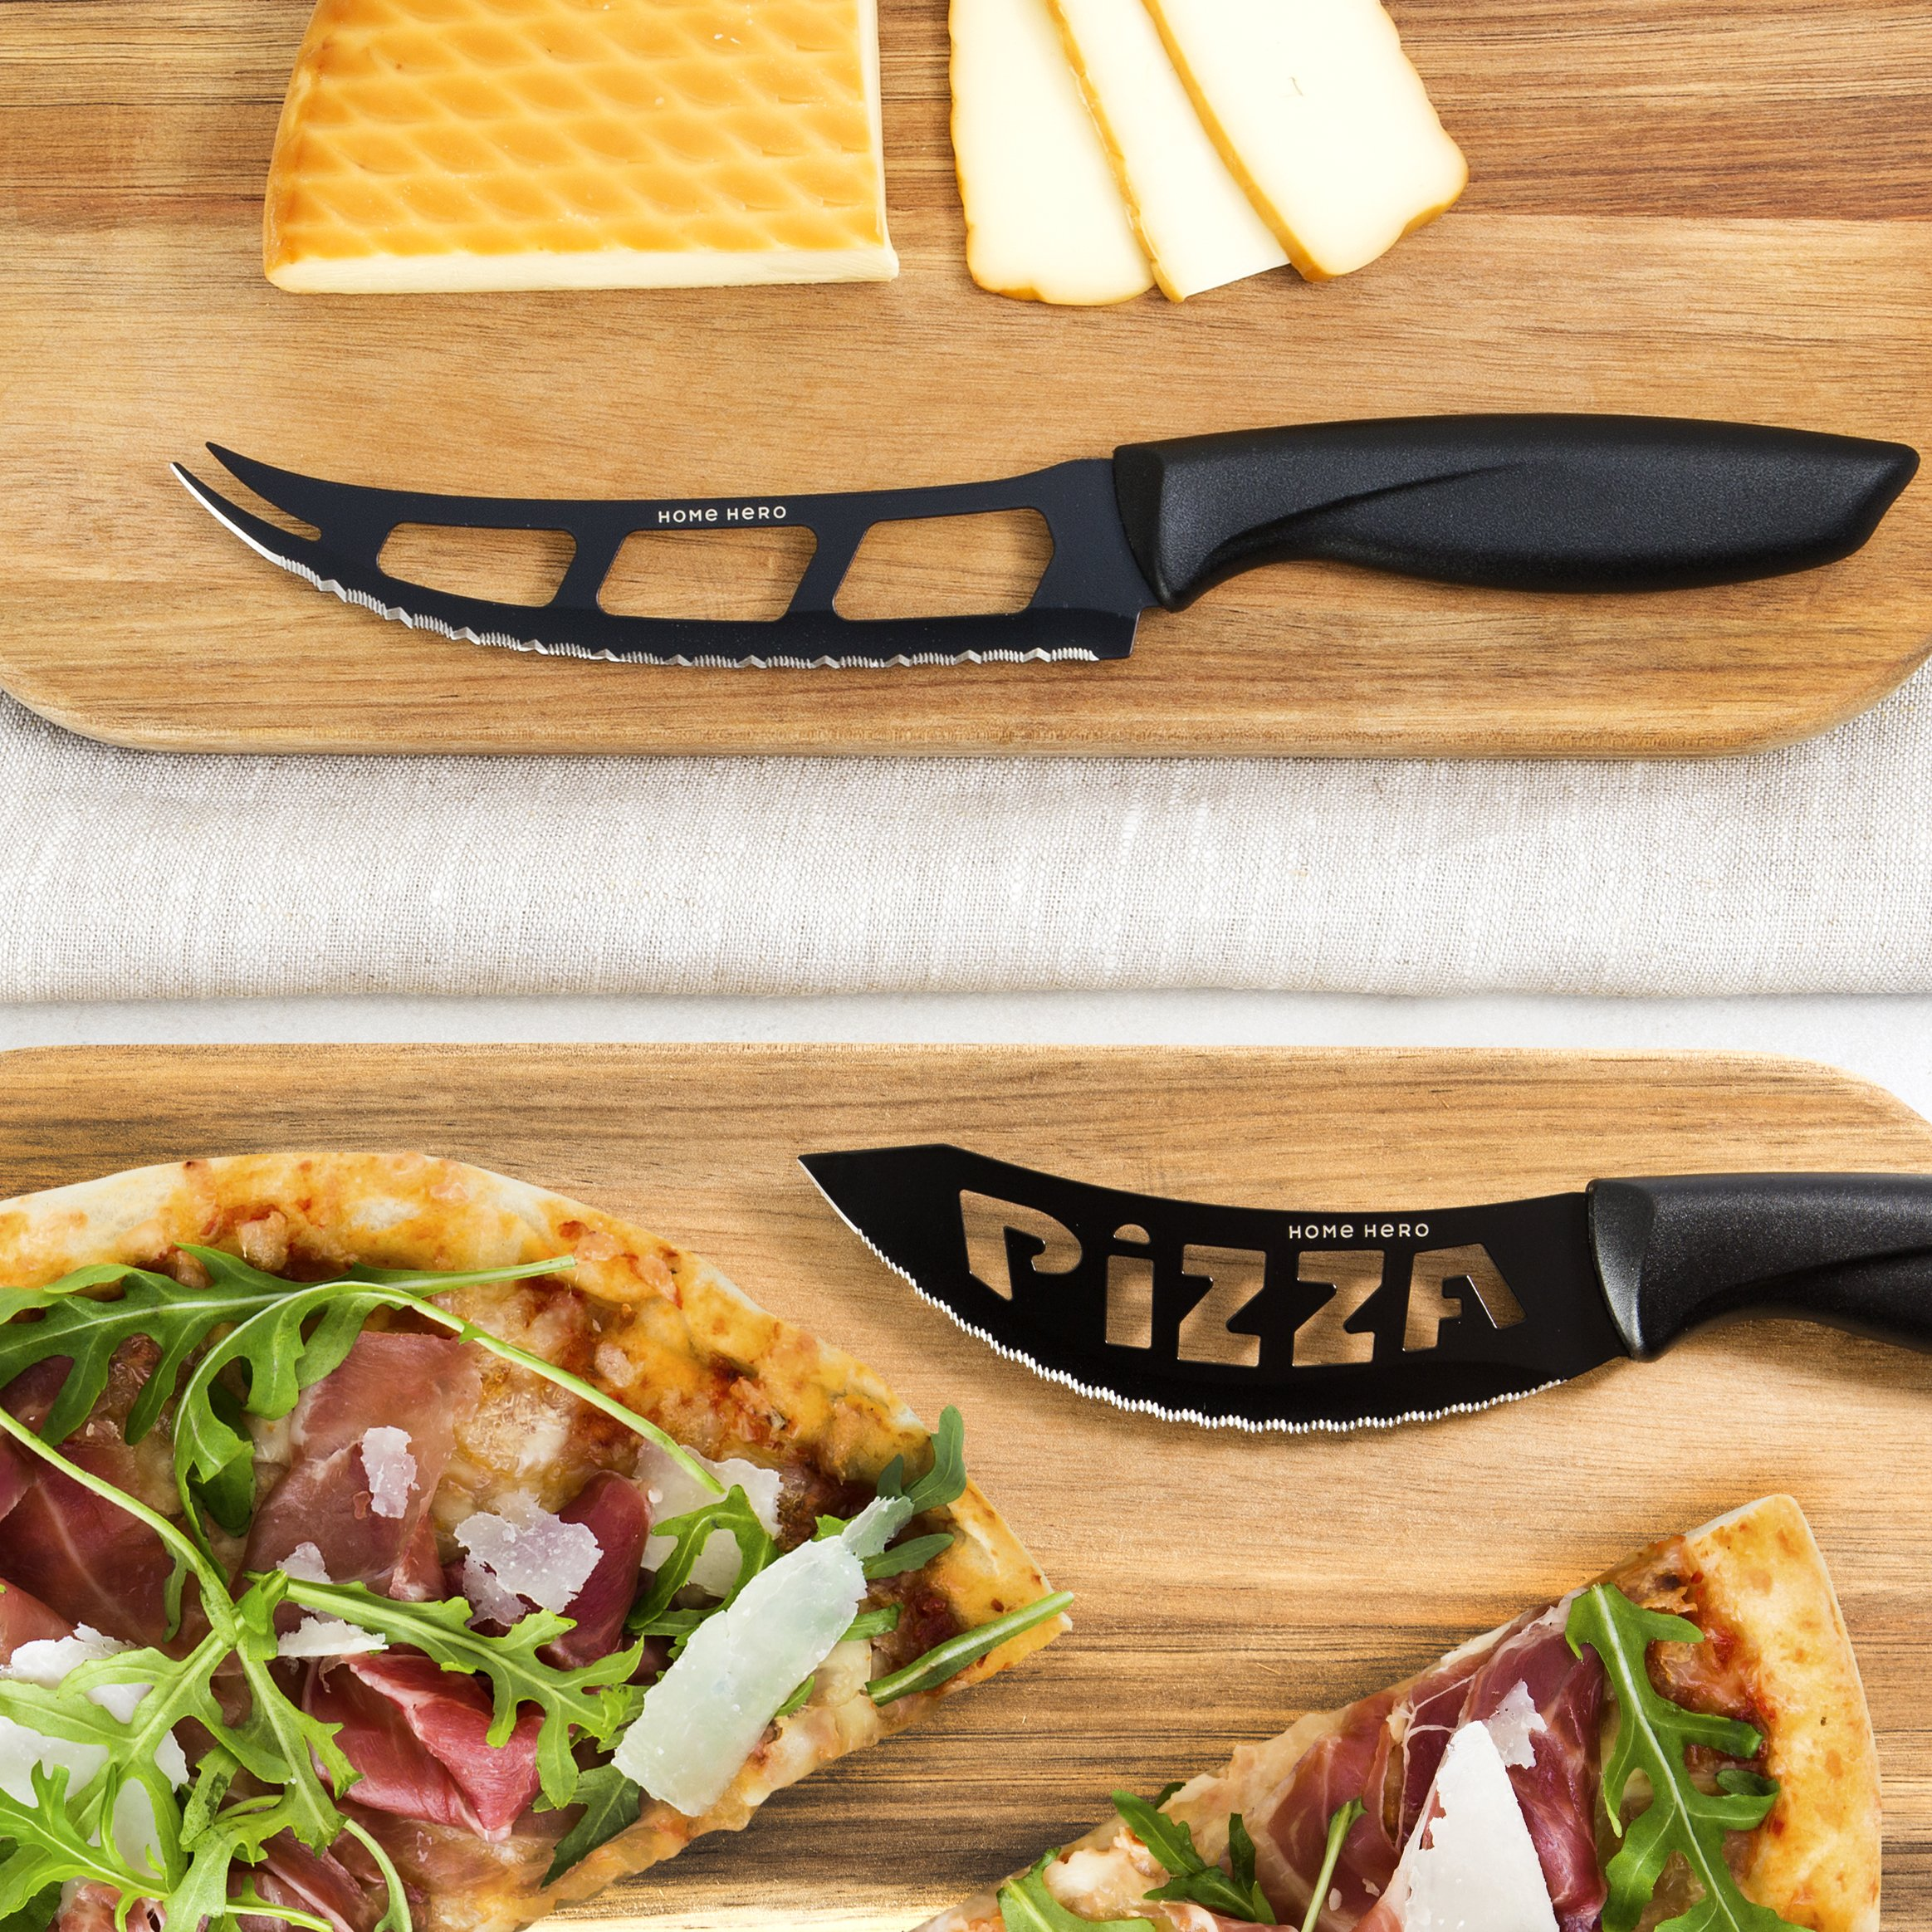 Stainless Steel Knife Set with Block - 13 Kitchen Knives Set Chef Knife Set with Knife Sharpener, 6 Steak Knives, Bonus Peeler Scissors Cheese Pizza Knife & Acrylic Stand - Best Cutlery Set Gift by Home Hero (Image #7)